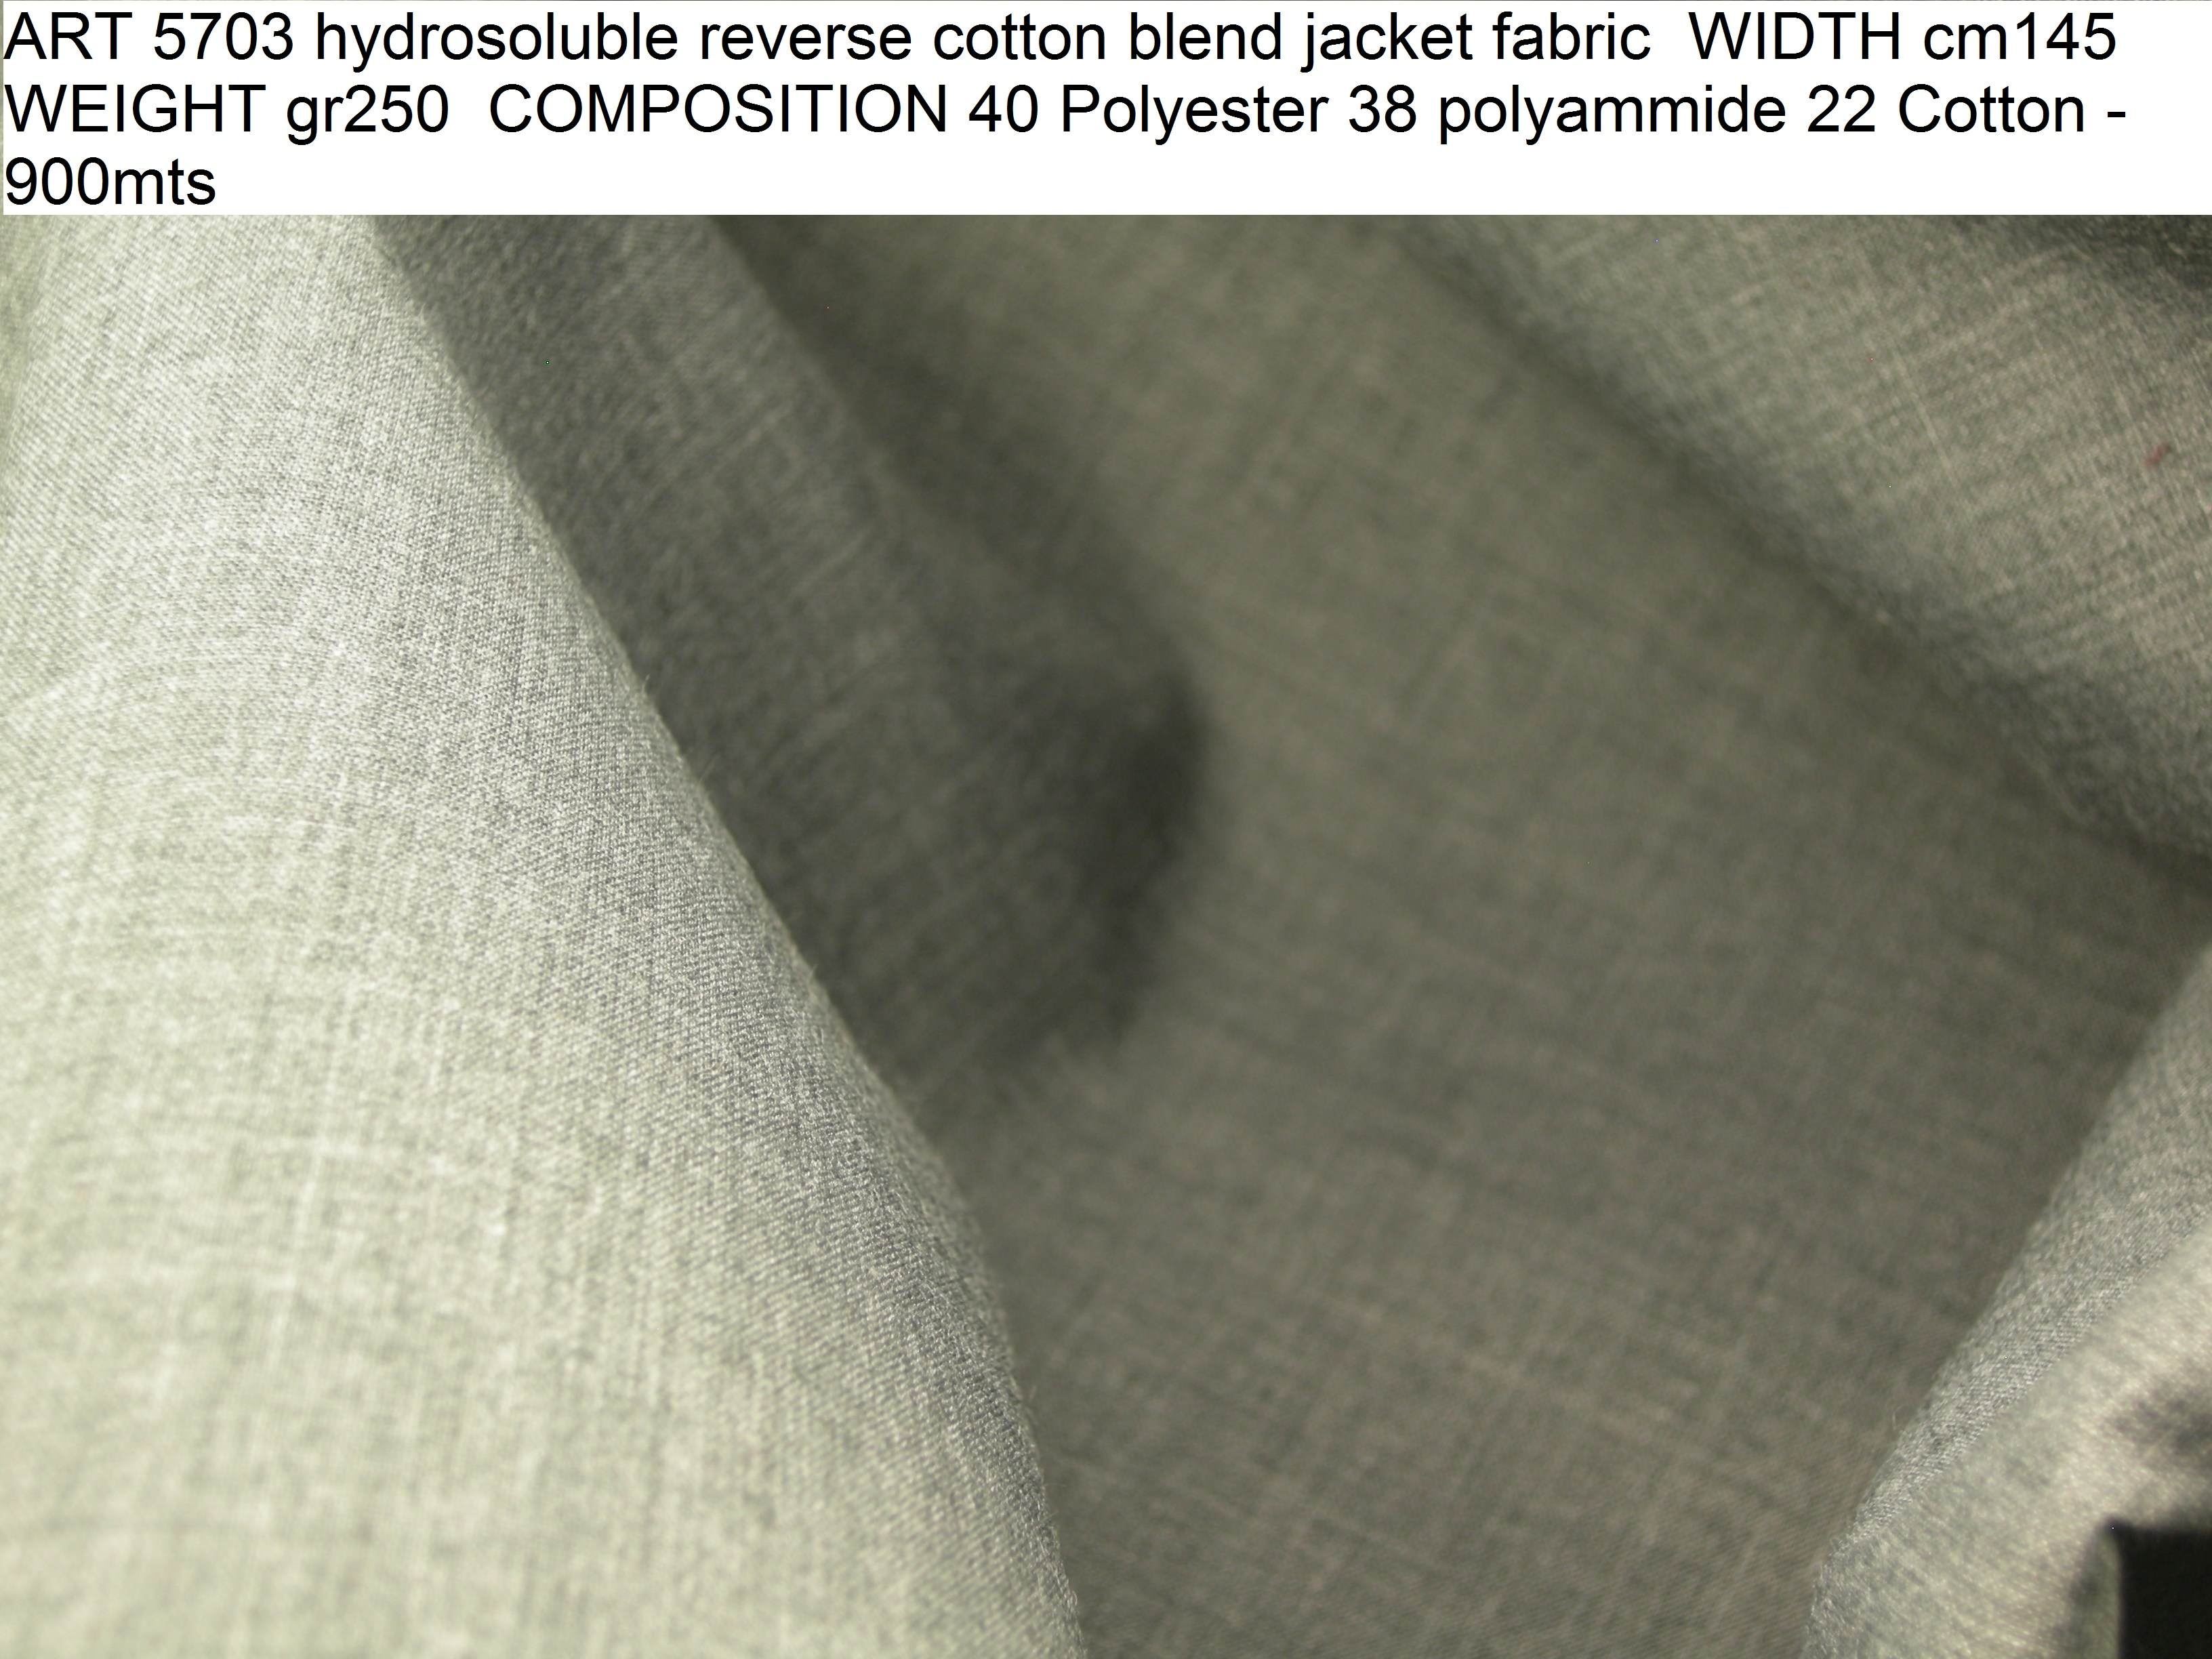 ART 5703 hydrosoluble reverse cotton blend jacket fabric WIDTH cm145 WEIGHT gr250 COMPOSITION 40 Polyester 38 polyammide 22 Cotton - 900mts